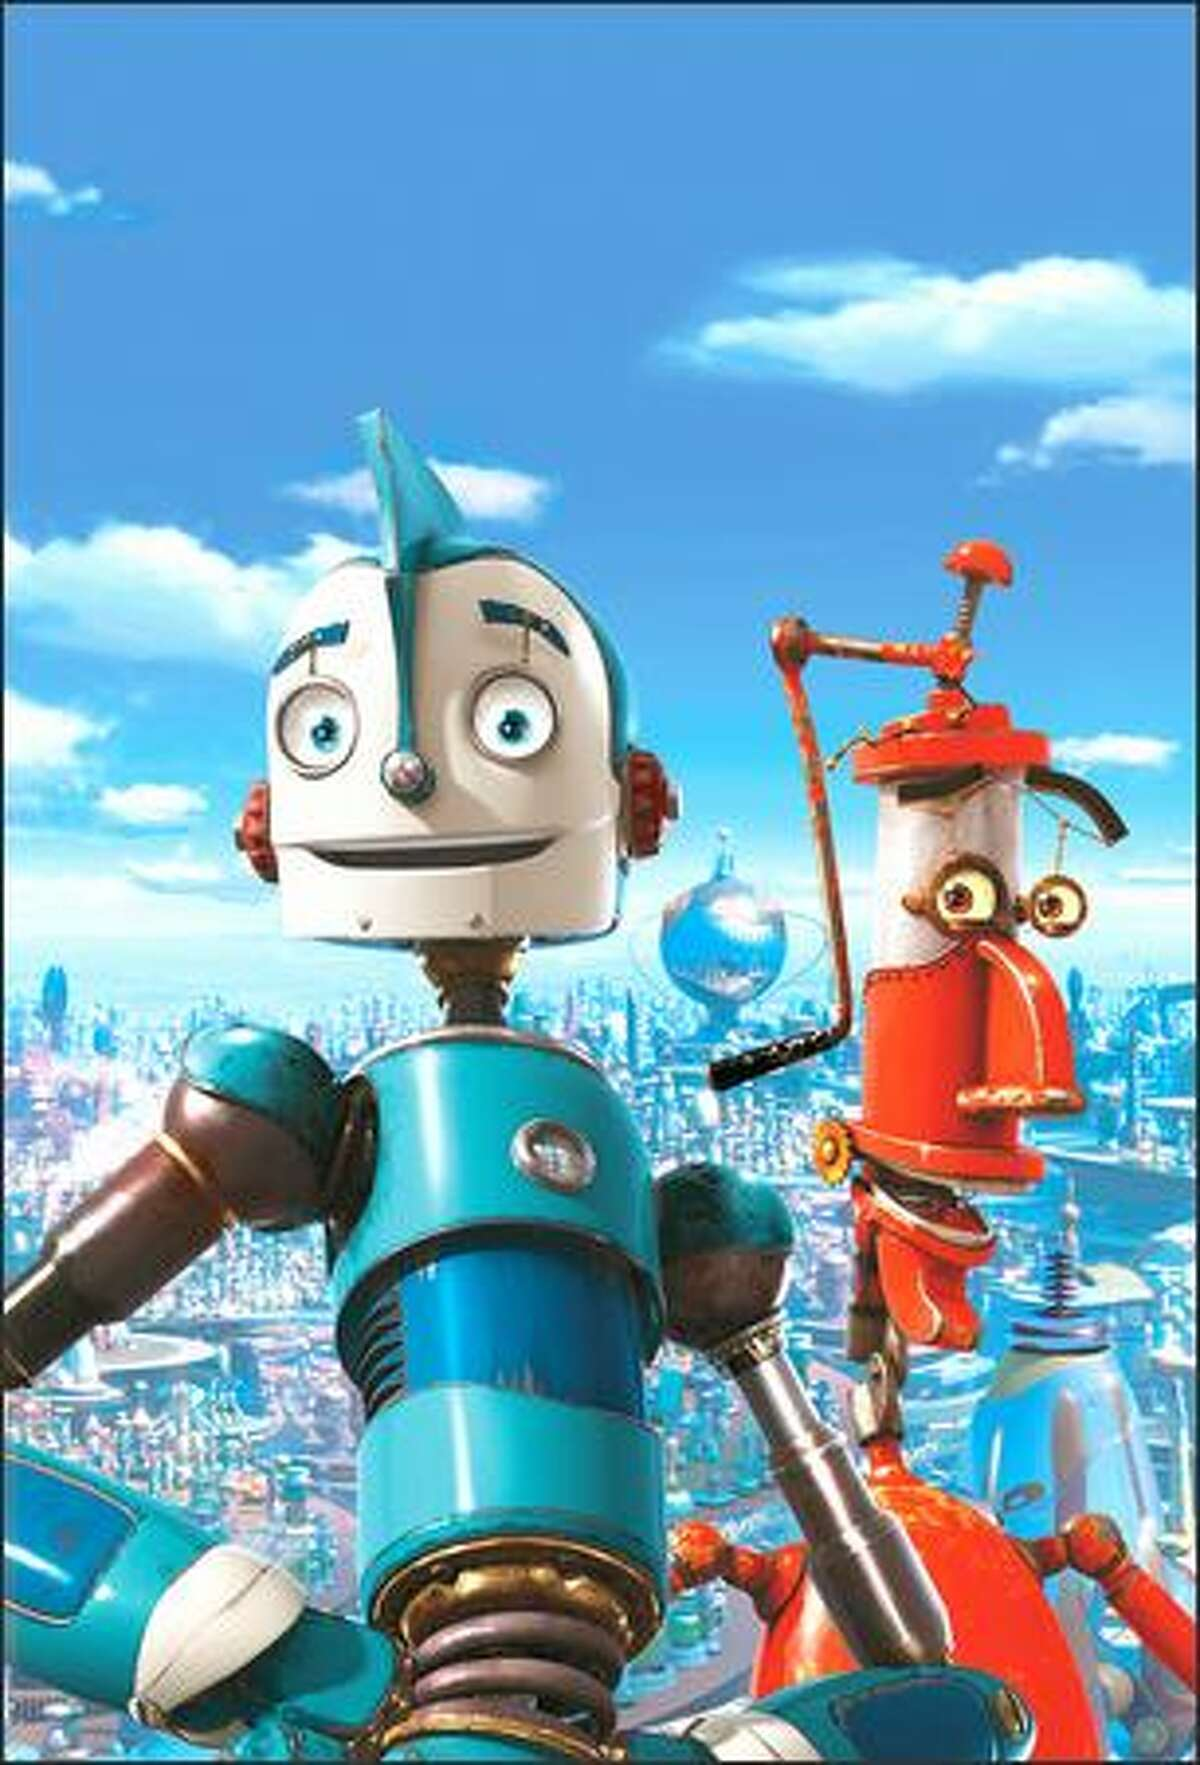 """""""Robots"""" is a CGI comedy-adventure set in Robot City, a world inhabited entirely by mechanical creatures. Our hero, young inventor Rodney Copperbottom (voiced by Ewan McGregor, front) dreams of improving life for robots everywhere. His friend Fender (voiced by Robin Williams), meanwhile, is just focused on improving himself with whatever spare parts he can scrounge up."""